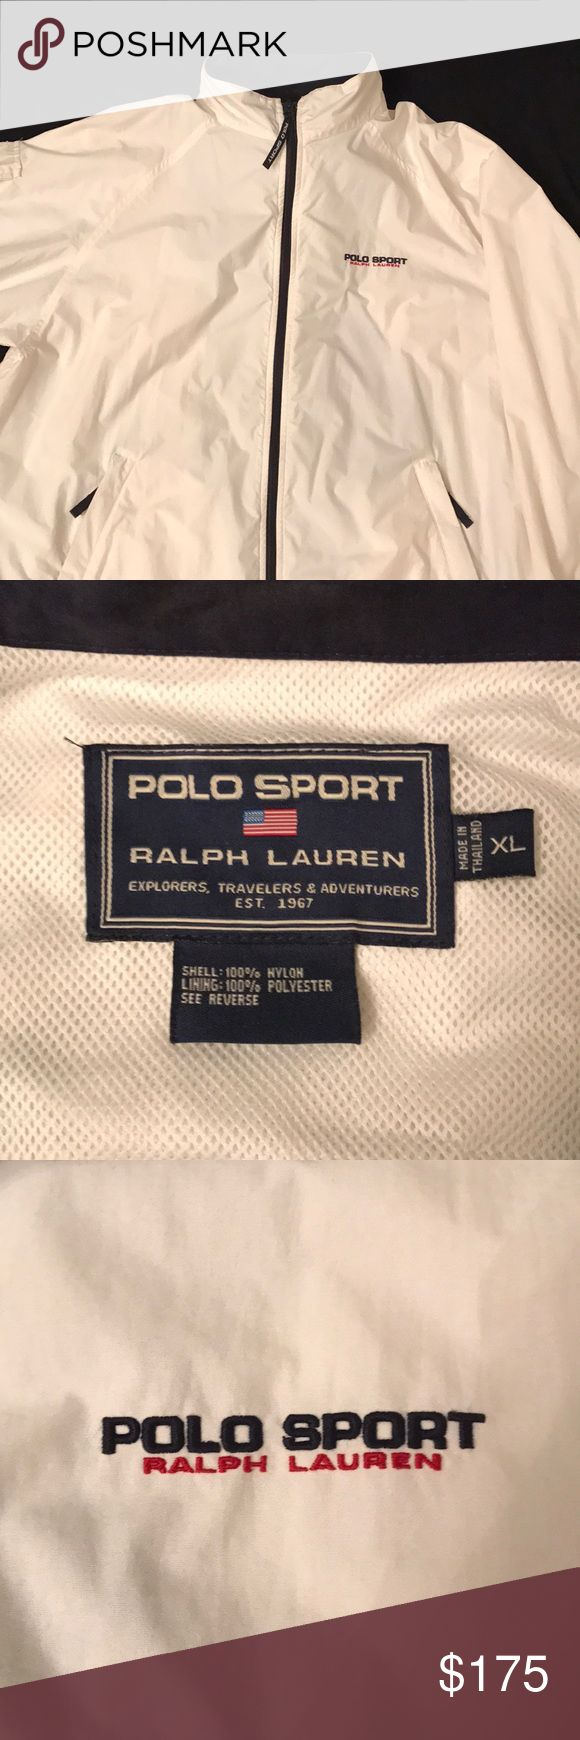 Polo Sport jacket Vintage white and navy blue Polo Sport jacket. Men's XL. EUC. Shell of jacket 100% nylon and lining 100% polyester. Polo by Ralph Lauren Jackets & Coats